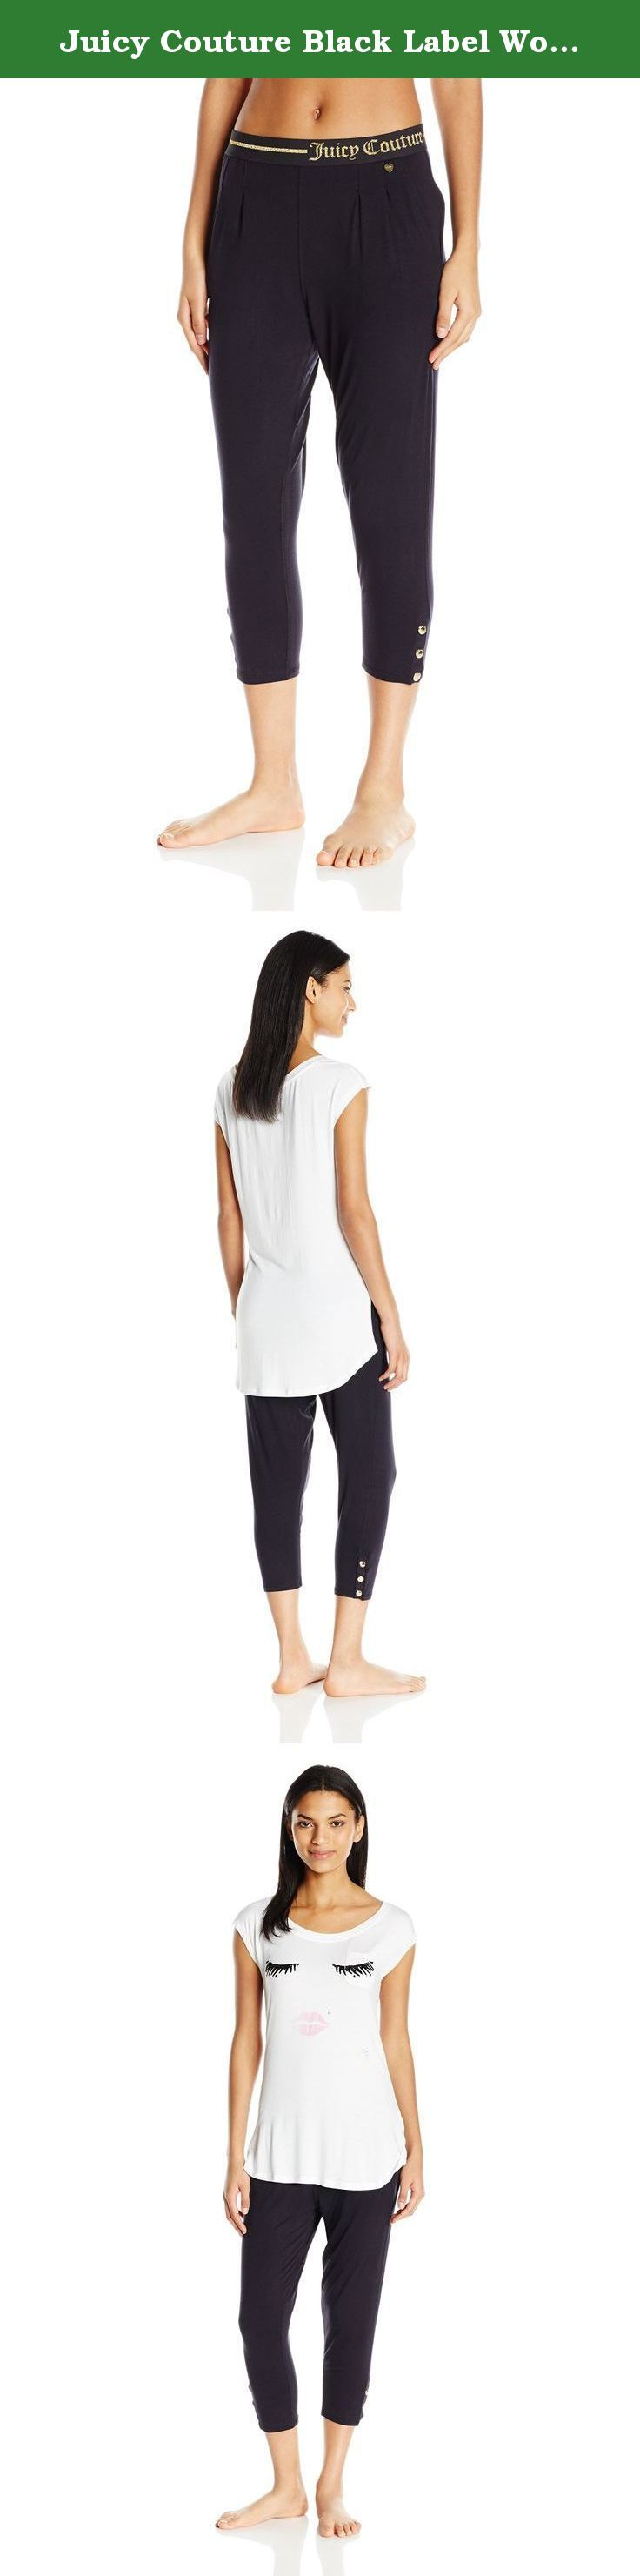 Juicy Couture Black Label Women's Eyelash Jersey Tee and Lurex Logo Easy Fit Slim Pant, Bright White/Pitch Black, Small. Lounge in style in this super soft tee and slim pant set from juicy couture. Super fun eyelash print top is perfect for the juicy girl.